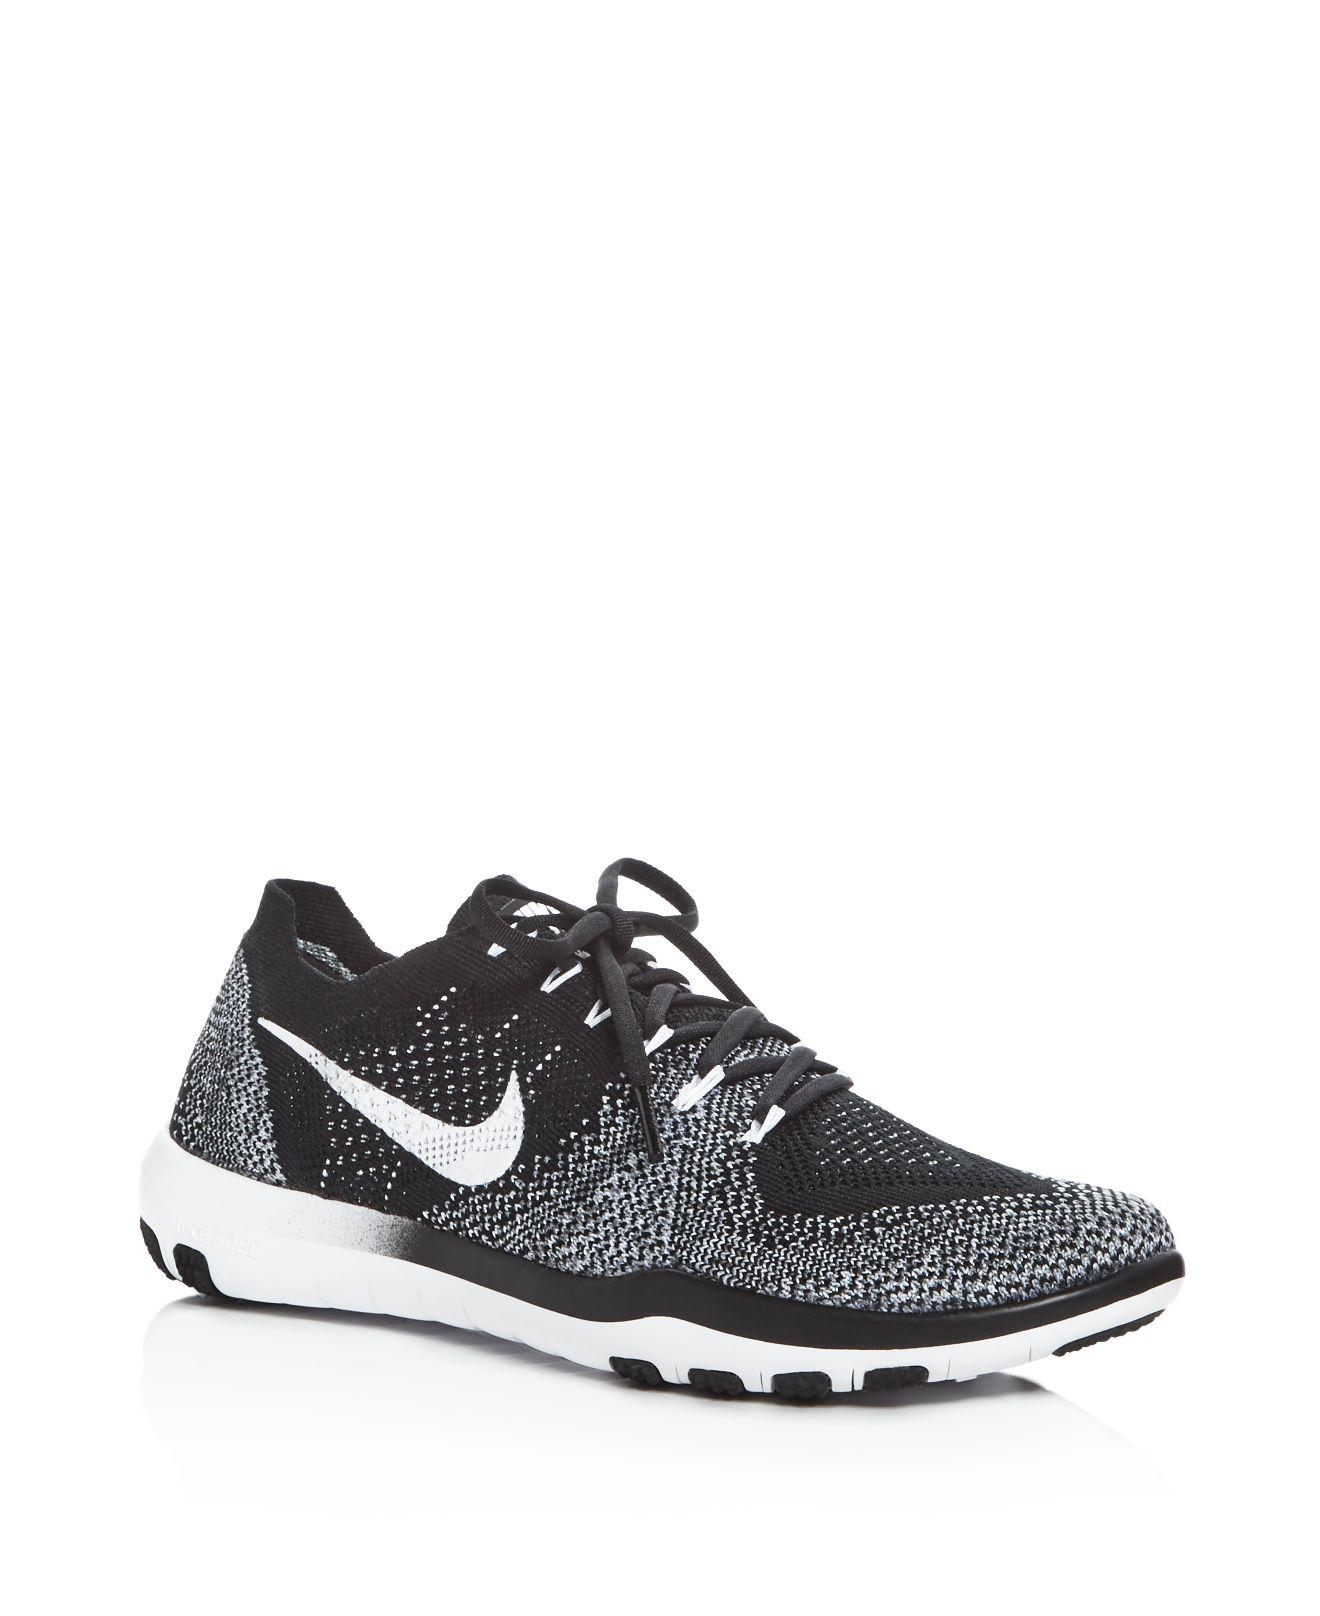 clearance footlocker finishline Nike White Lace-Up Sneakers lowest price sale online cheap countdown package cheap online shop hRT5LuEx